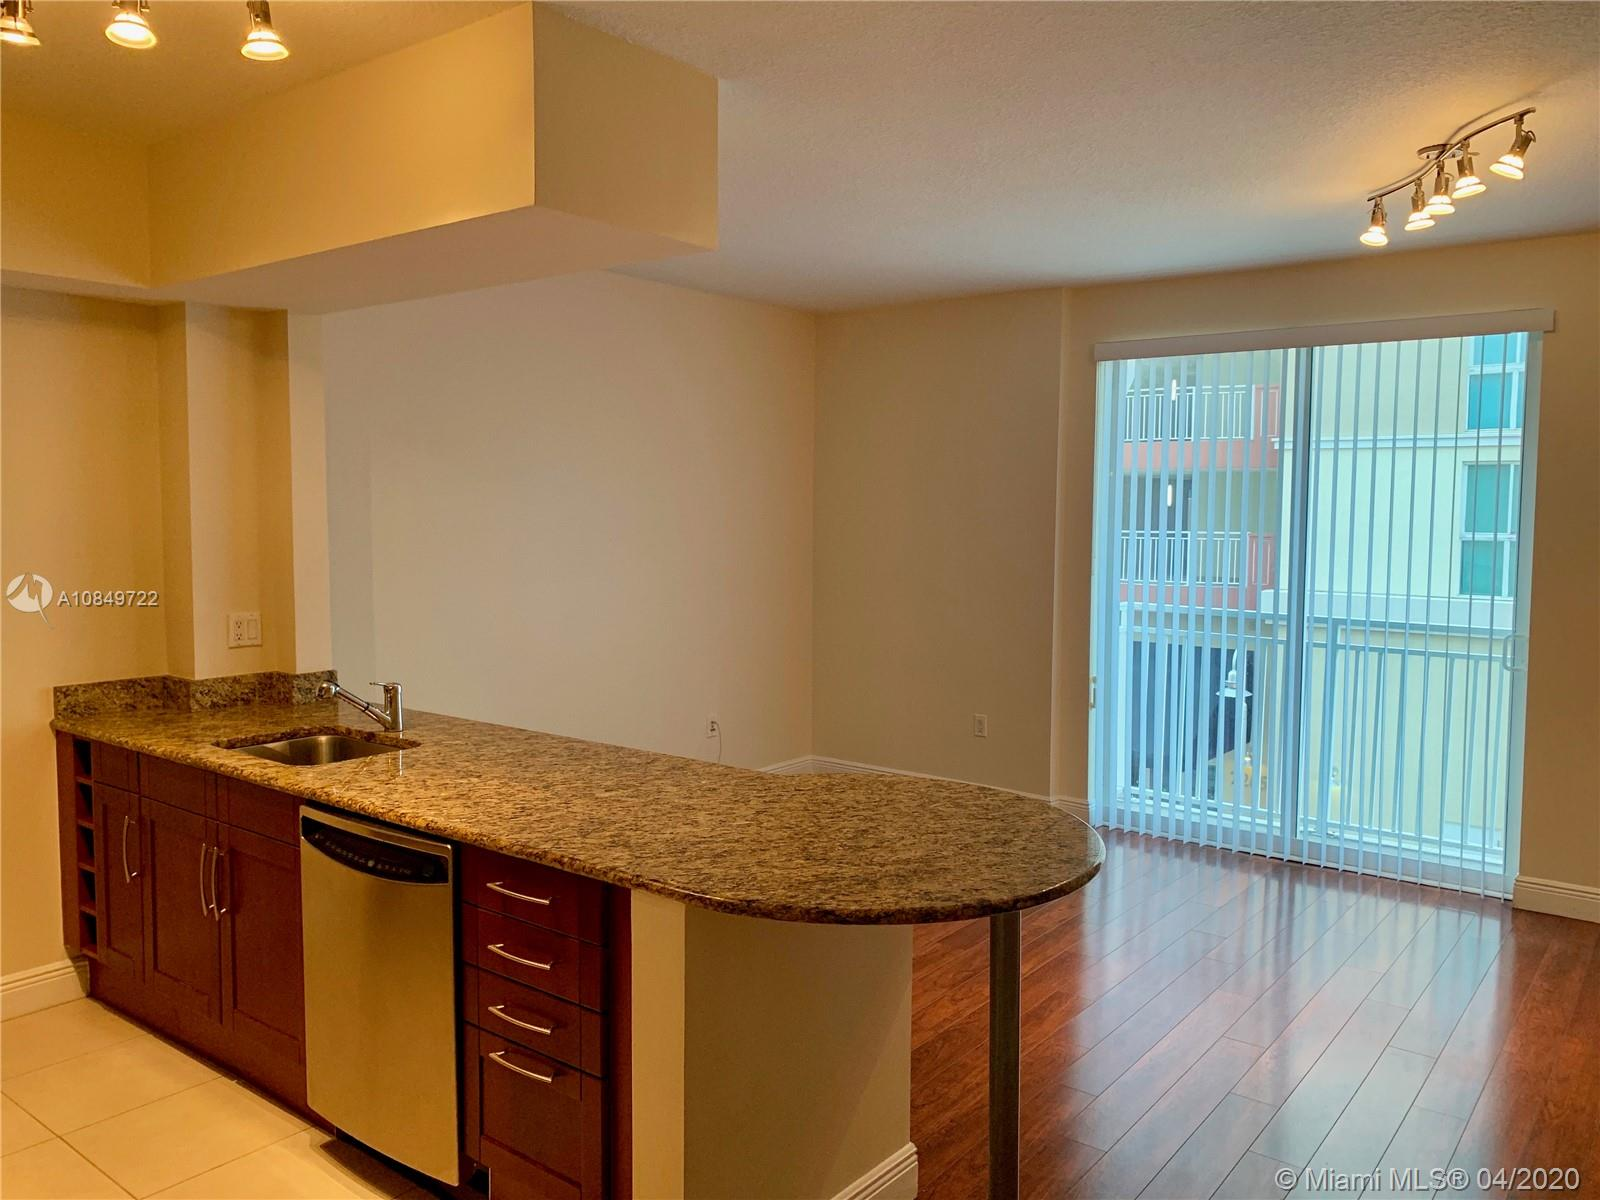 7290 SW 90th St # 309, Miami, Florida 33156, 2 Bedrooms Bedrooms, ,2 BathroomsBathrooms,Residential,For Sale,7290 SW 90th St # 309,A10849722